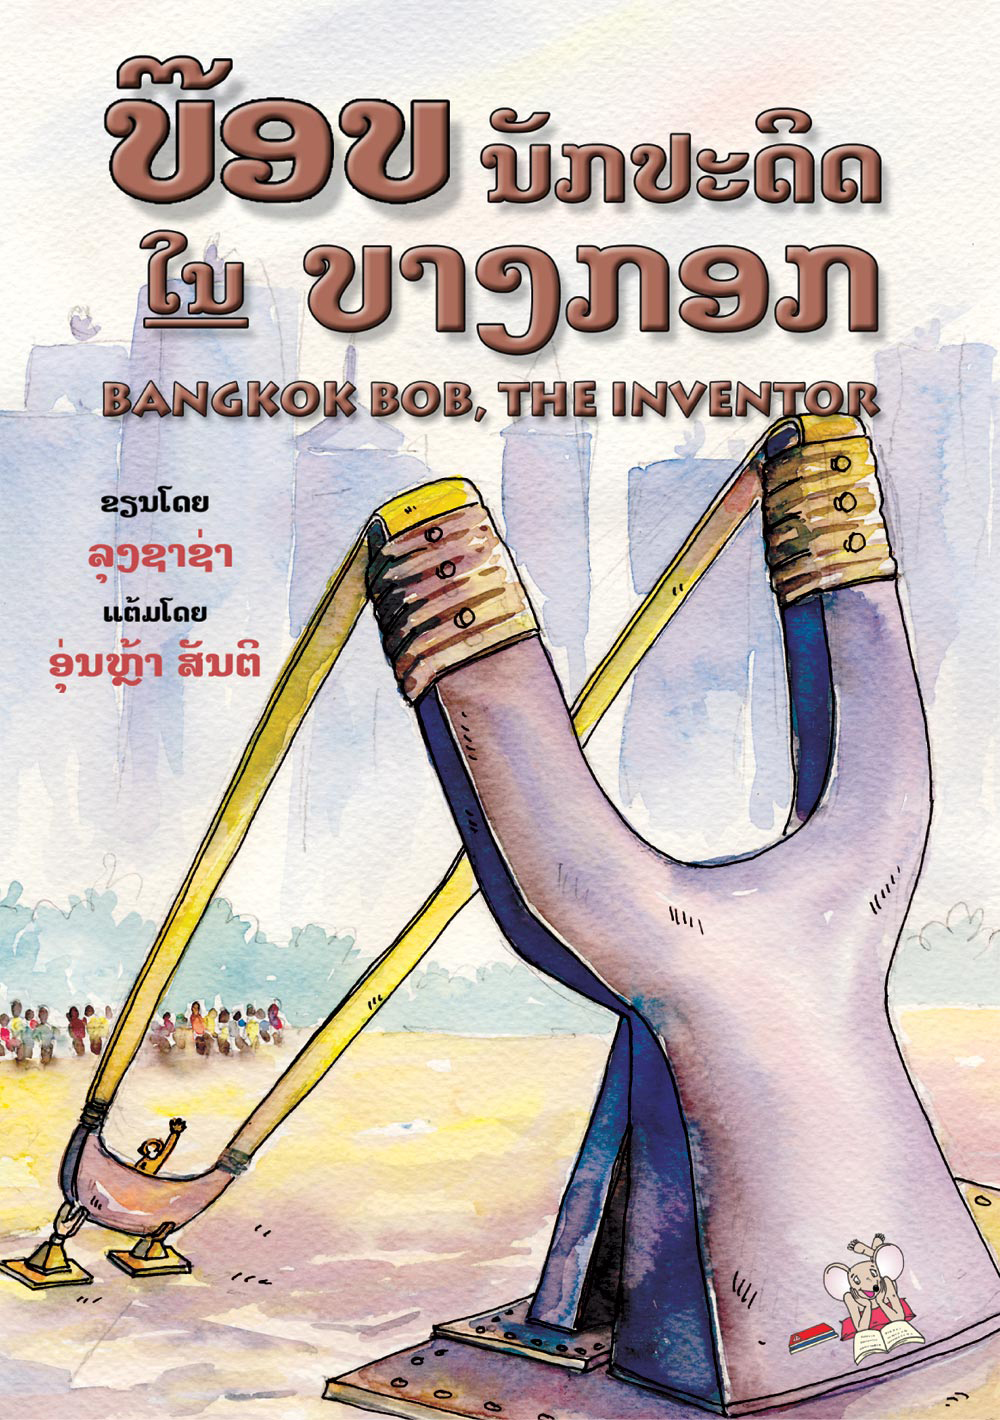 Bangkok Bob, the Inventor large book cover, published in Lao language